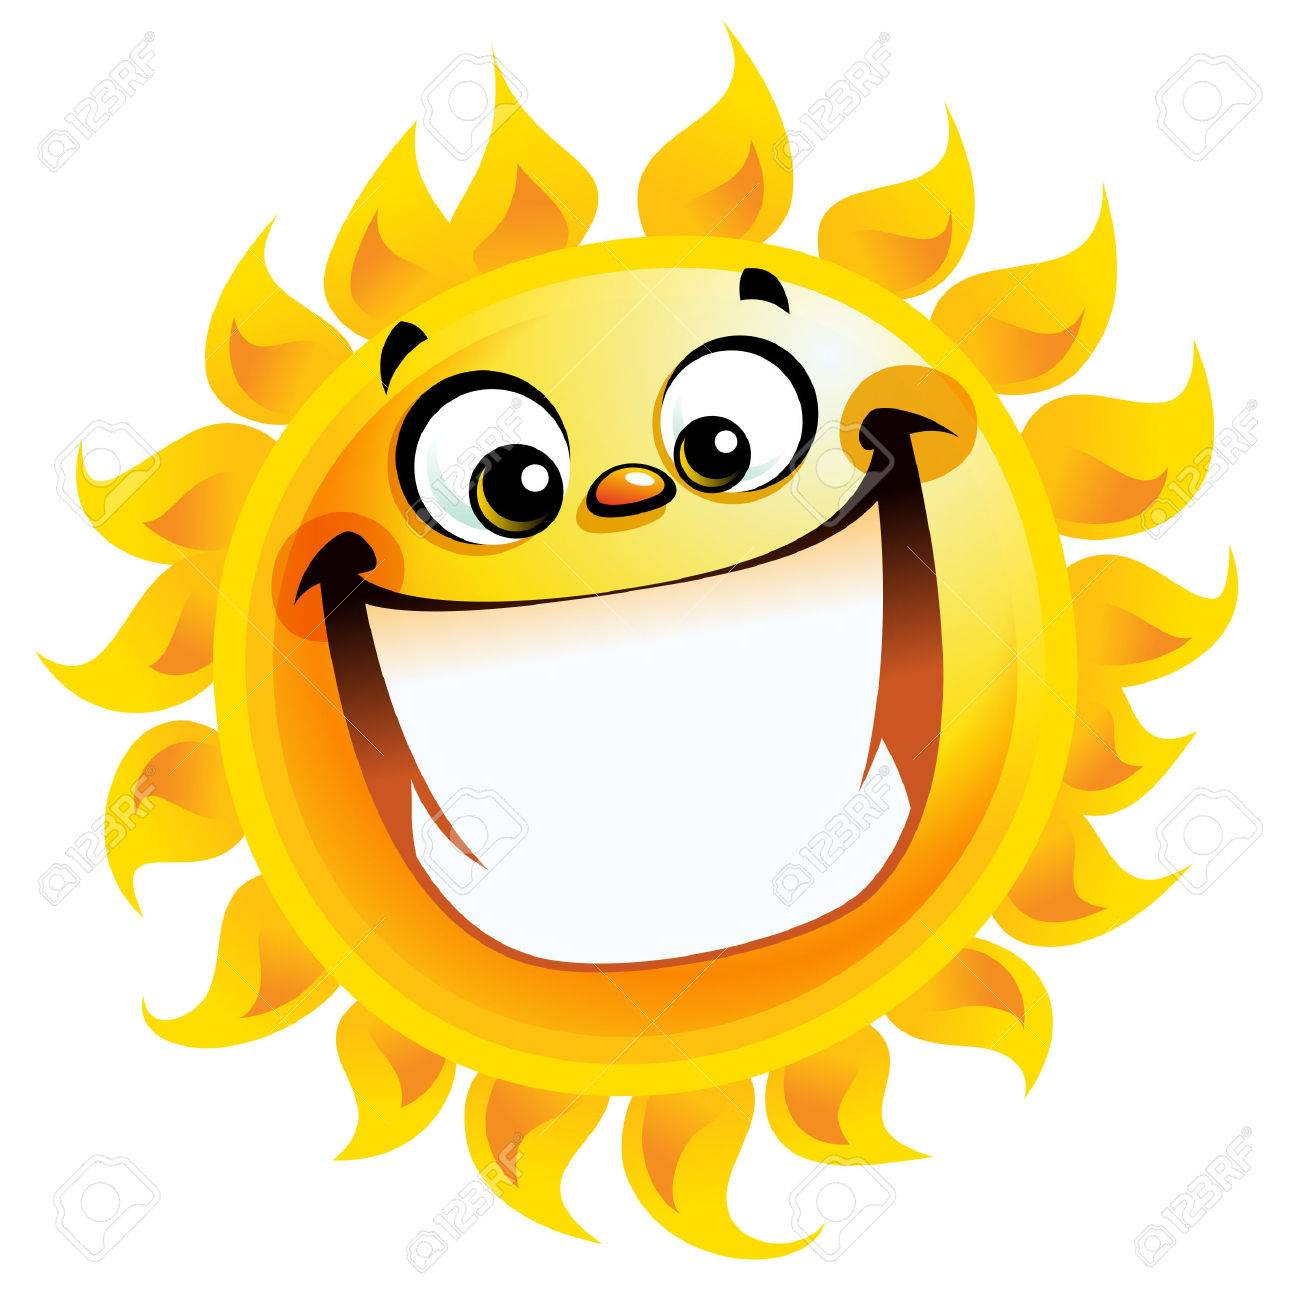 Smiling sun images - Shining Yellow Excited Smiling Sun Cartoon Character As Good Weather Sign Temperature Stock Vector 29455685